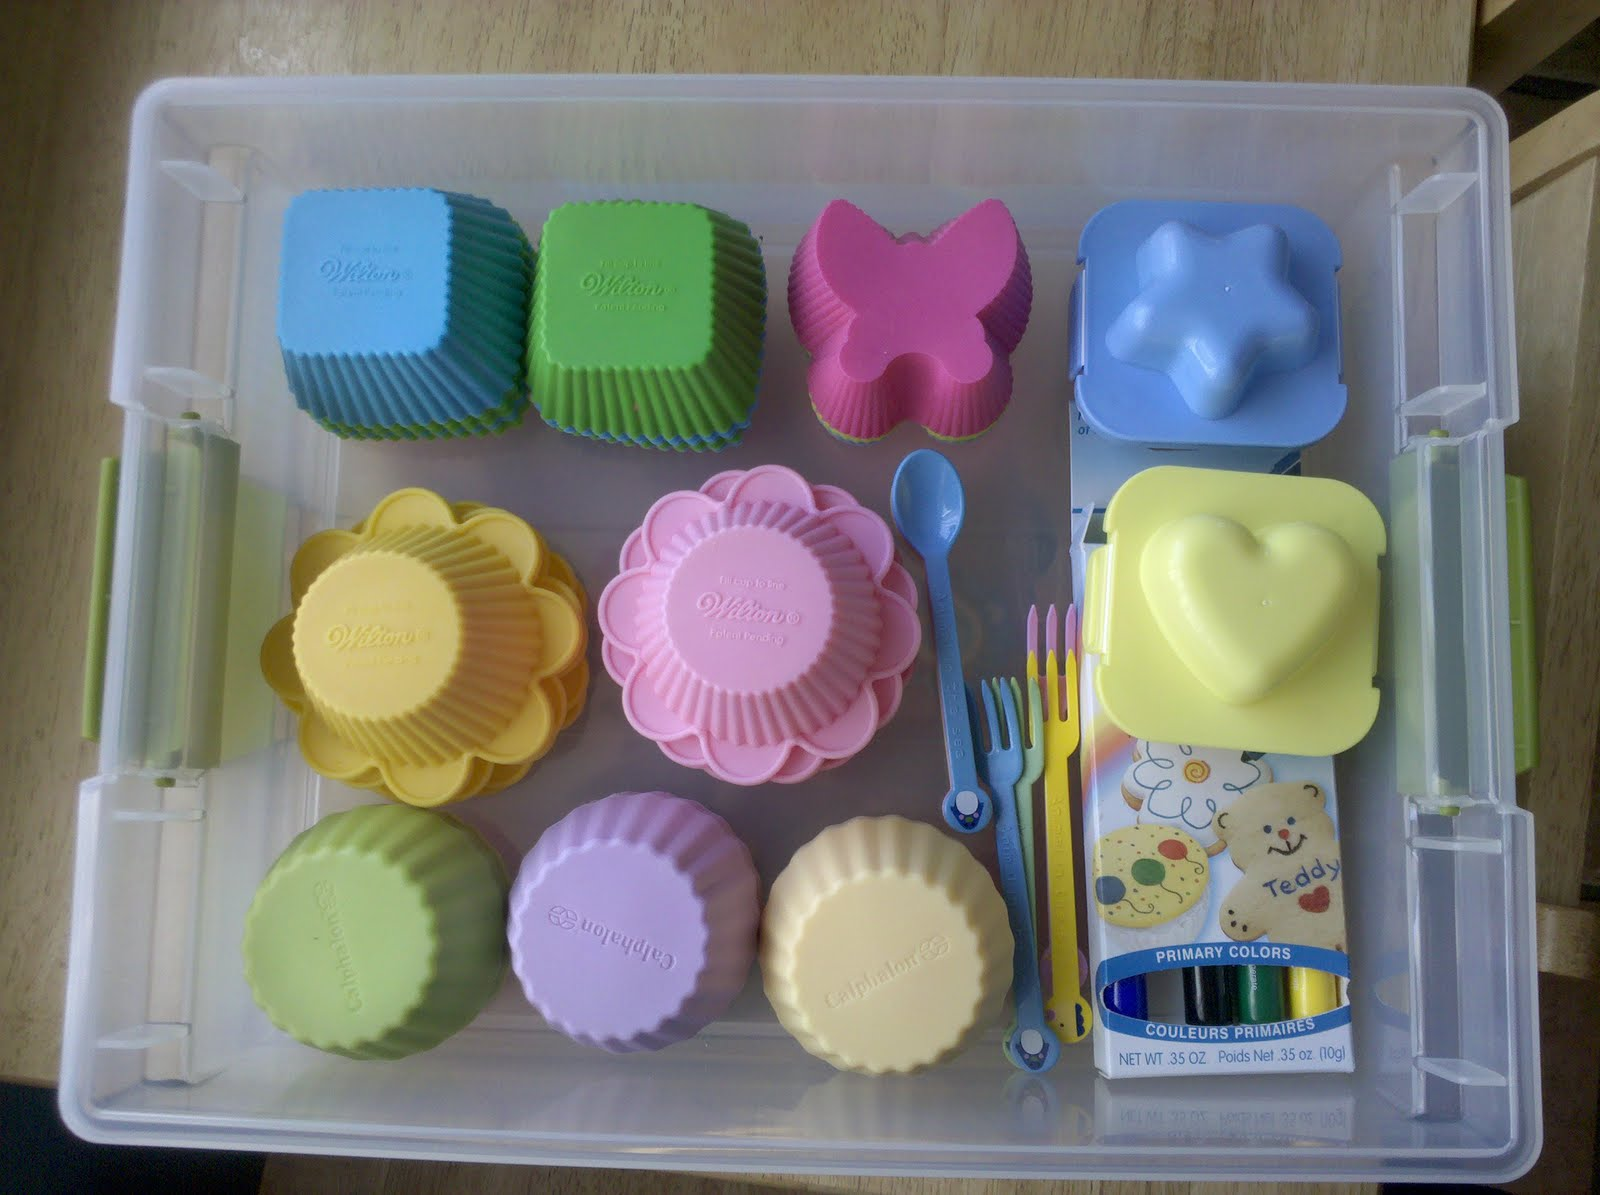 Be Brave Keep Going Muffin Tin Meal Supplies Storage